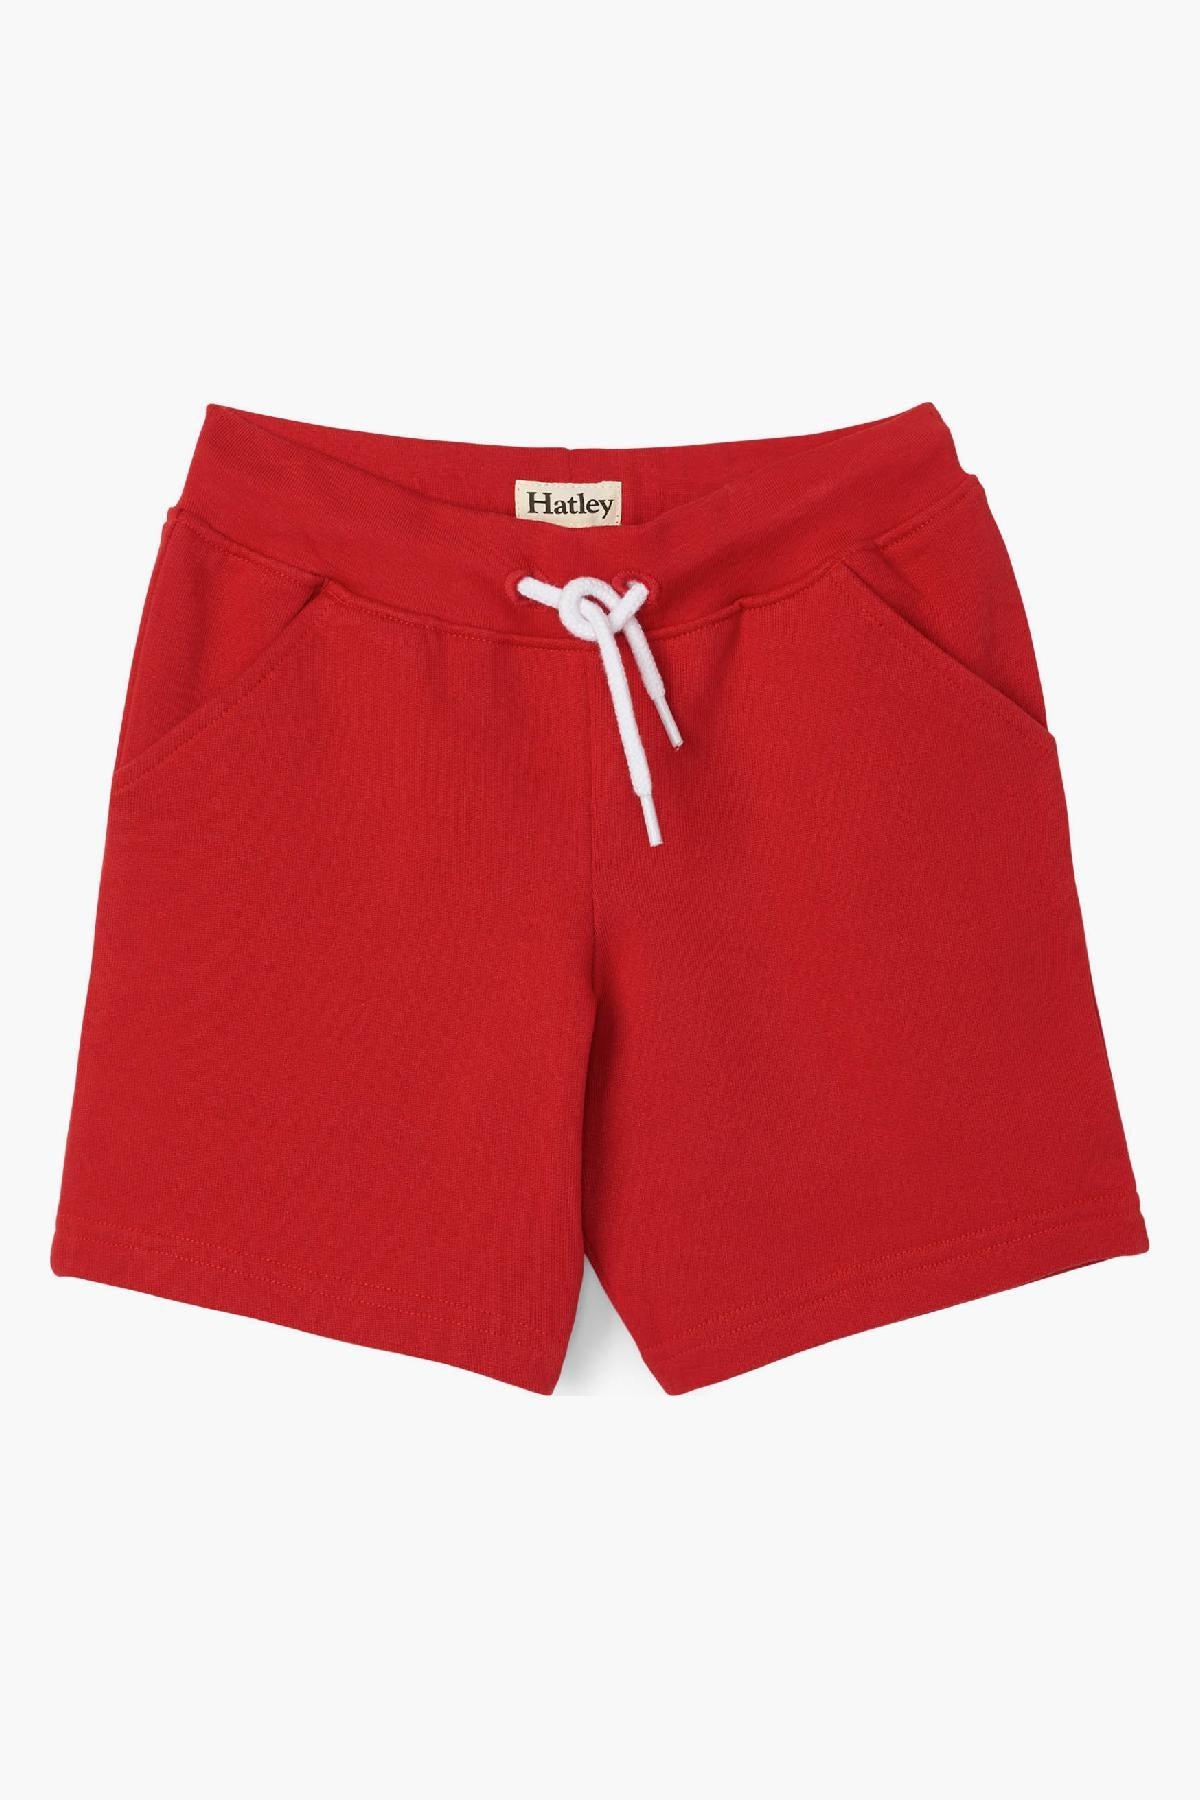 Hatley French Terry Boys Shorts - Red